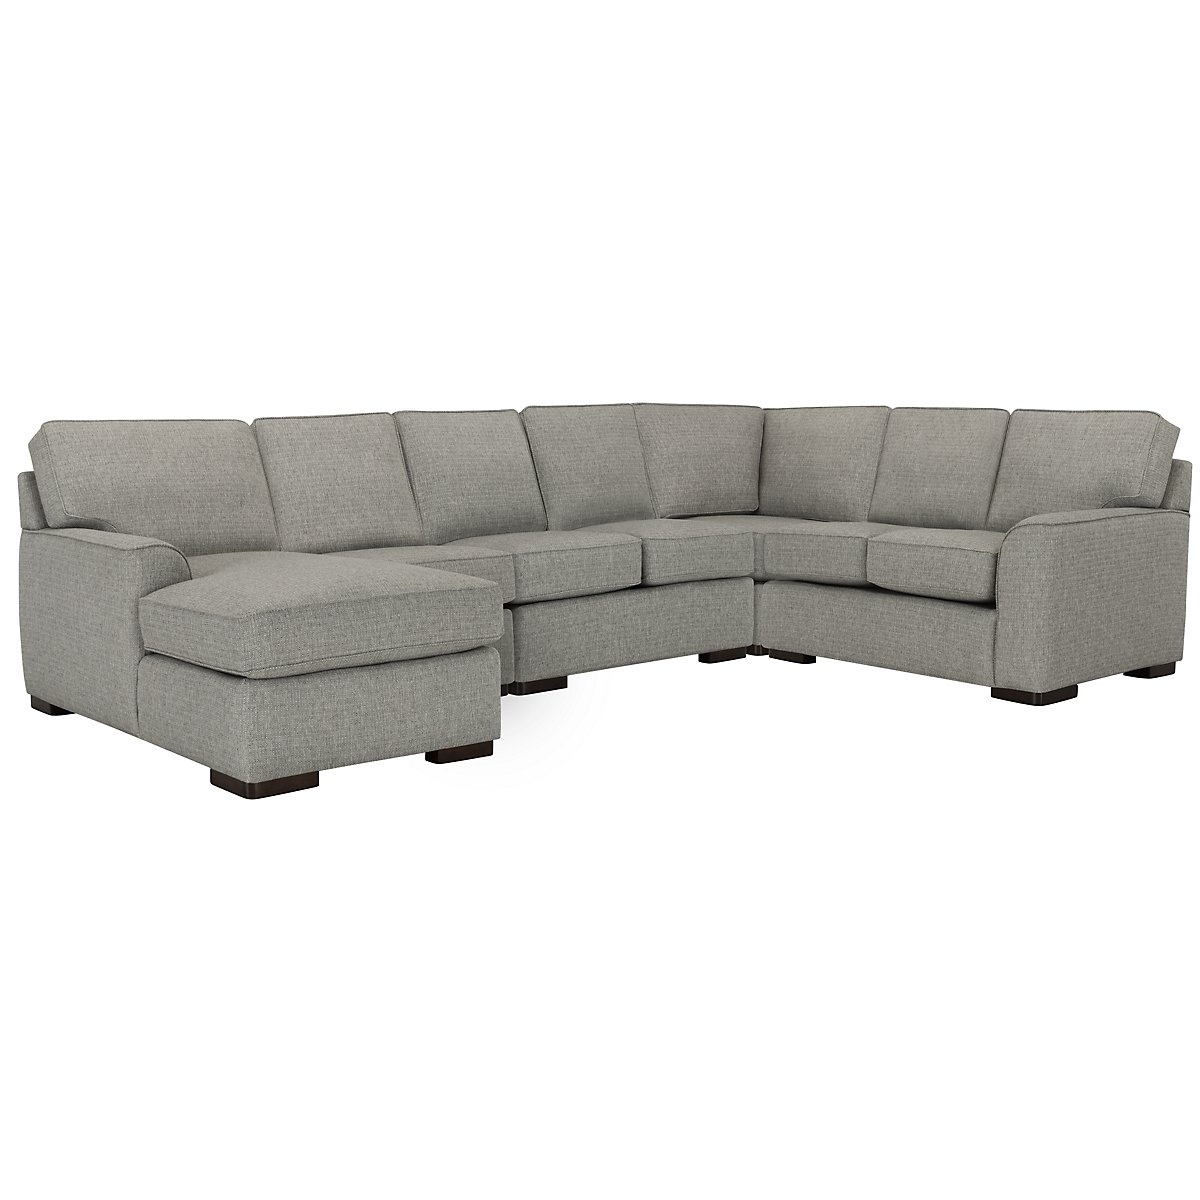 Austin Gray Fabric Large Left Chaise Sectional